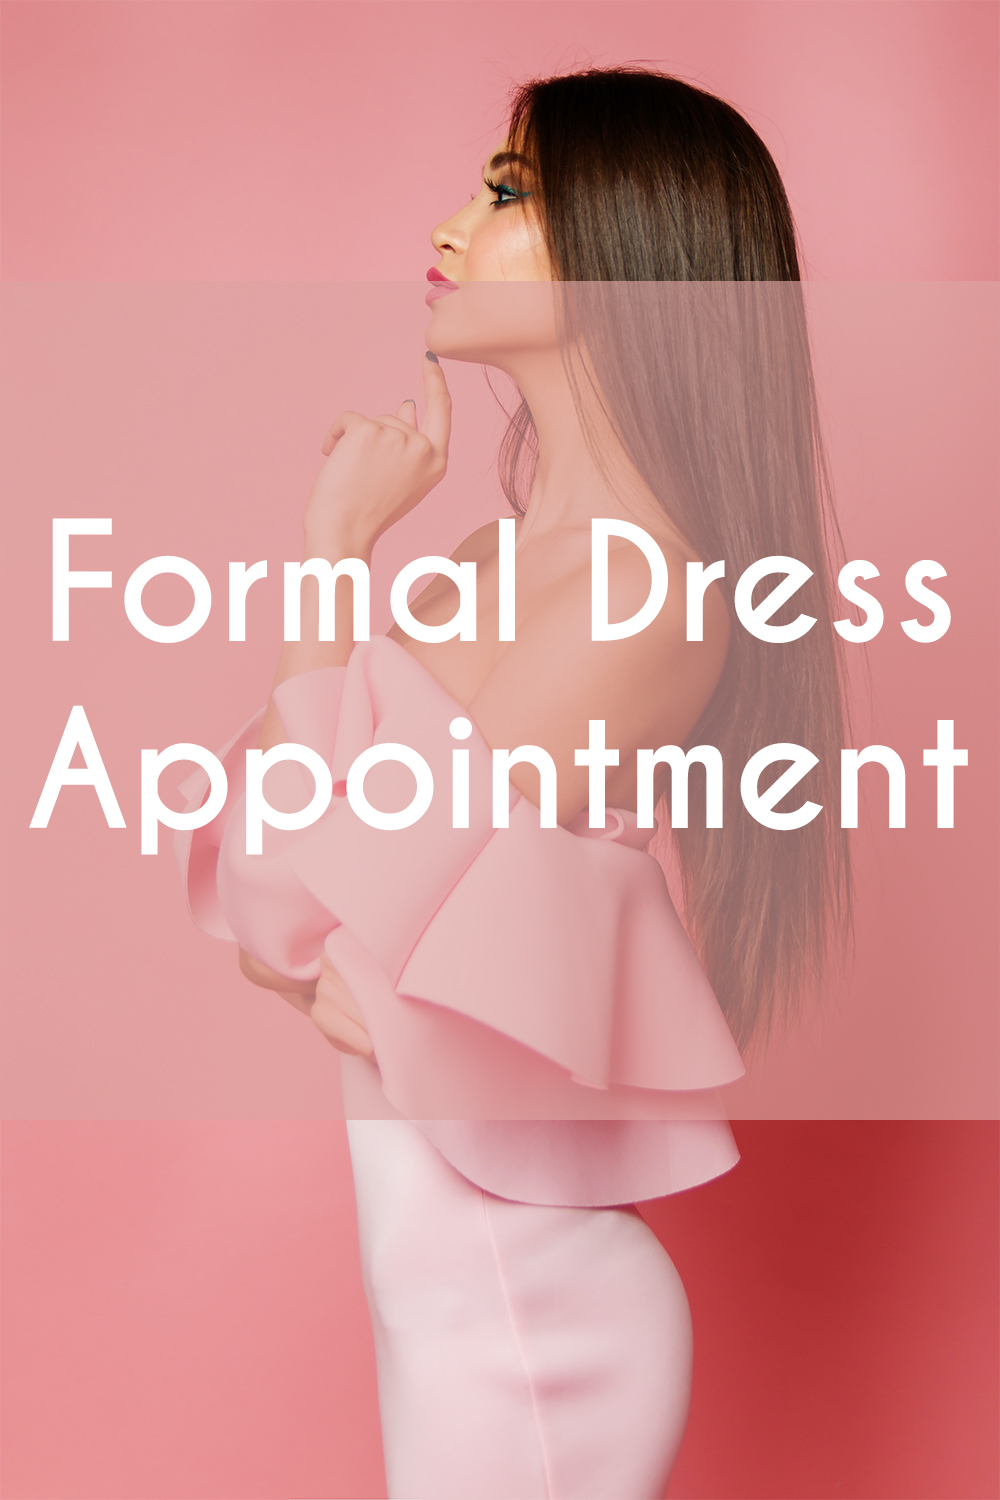 Formal Dress Appointments